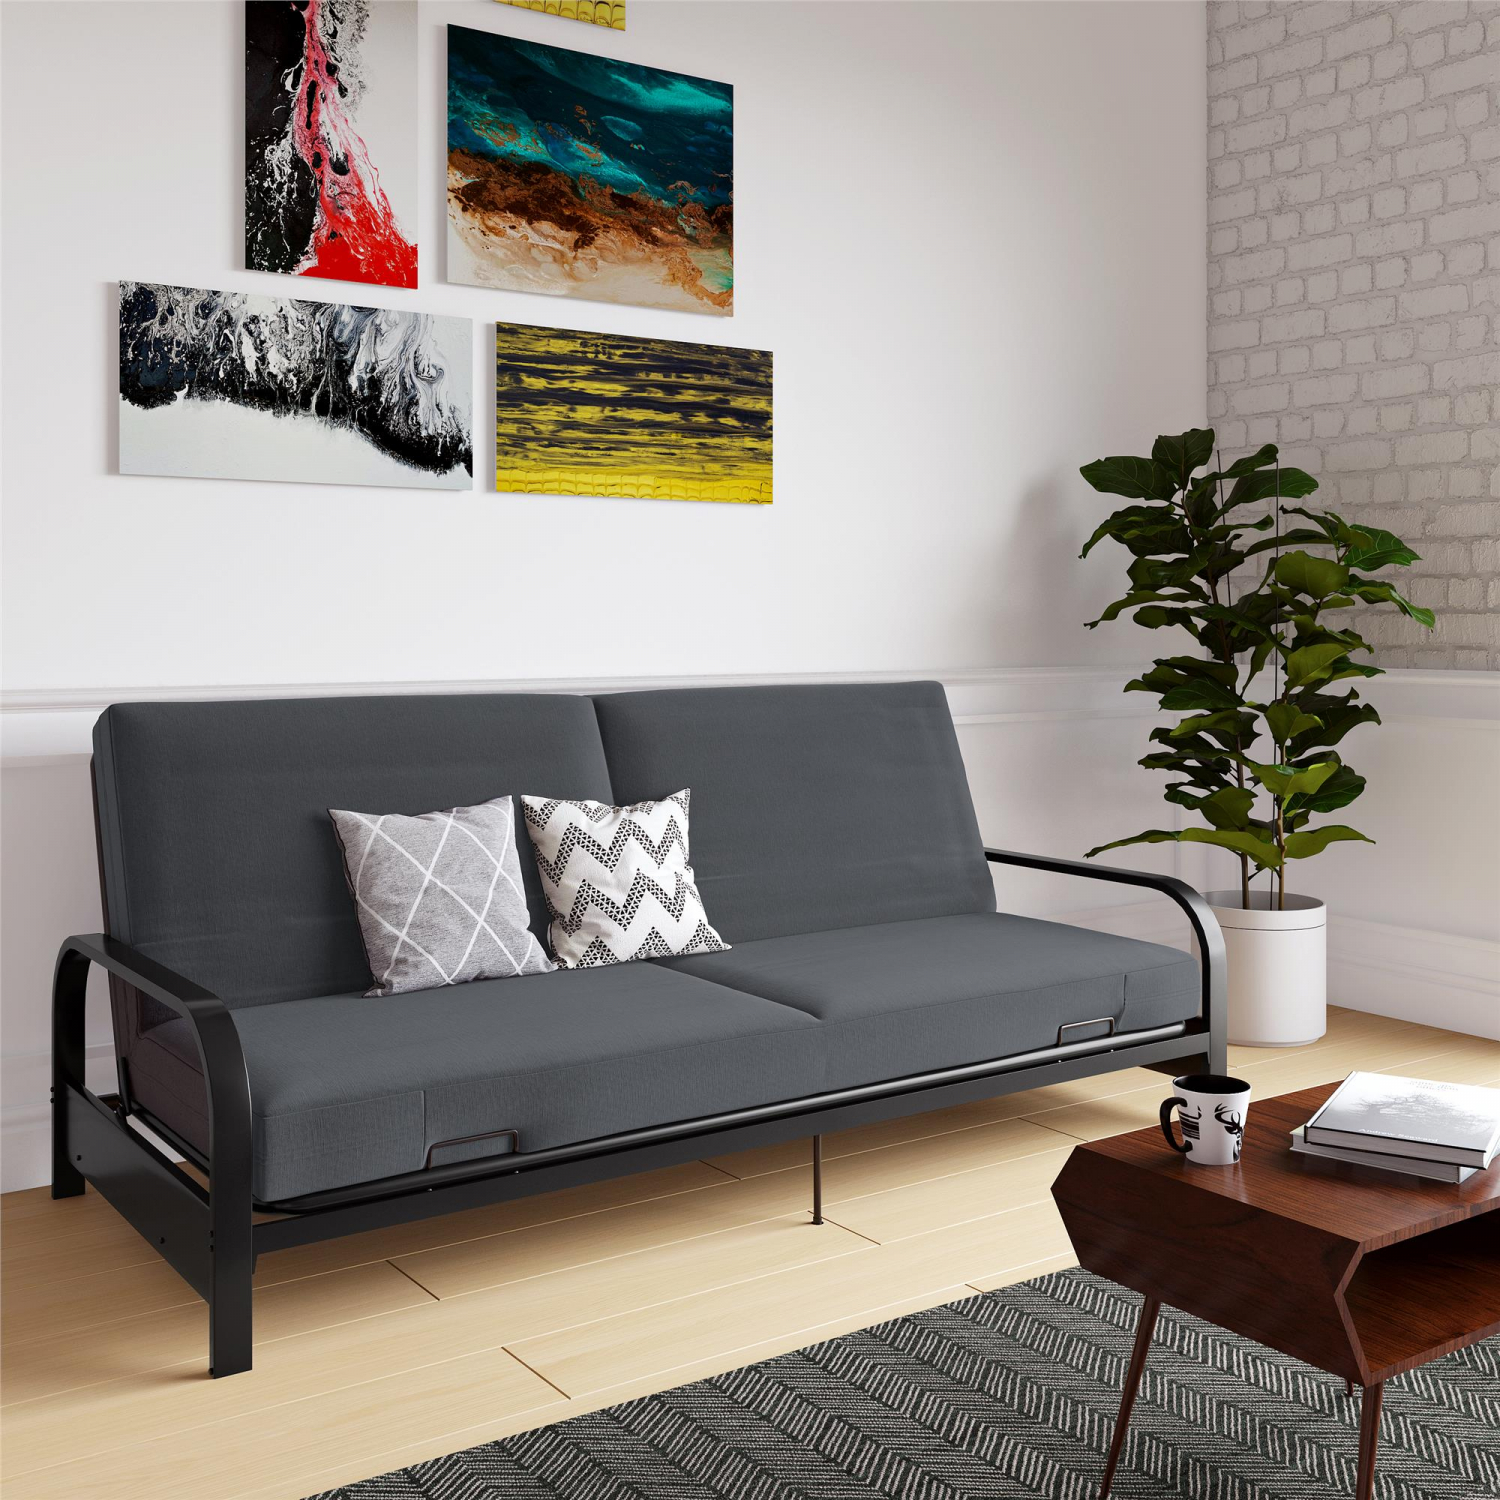 Outstanding Details About Full Size Futon Sleeper Sofa Bed Frame With Mattress Convertible Couch Loveseat Theyellowbook Wood Chair Design Ideas Theyellowbookinfo